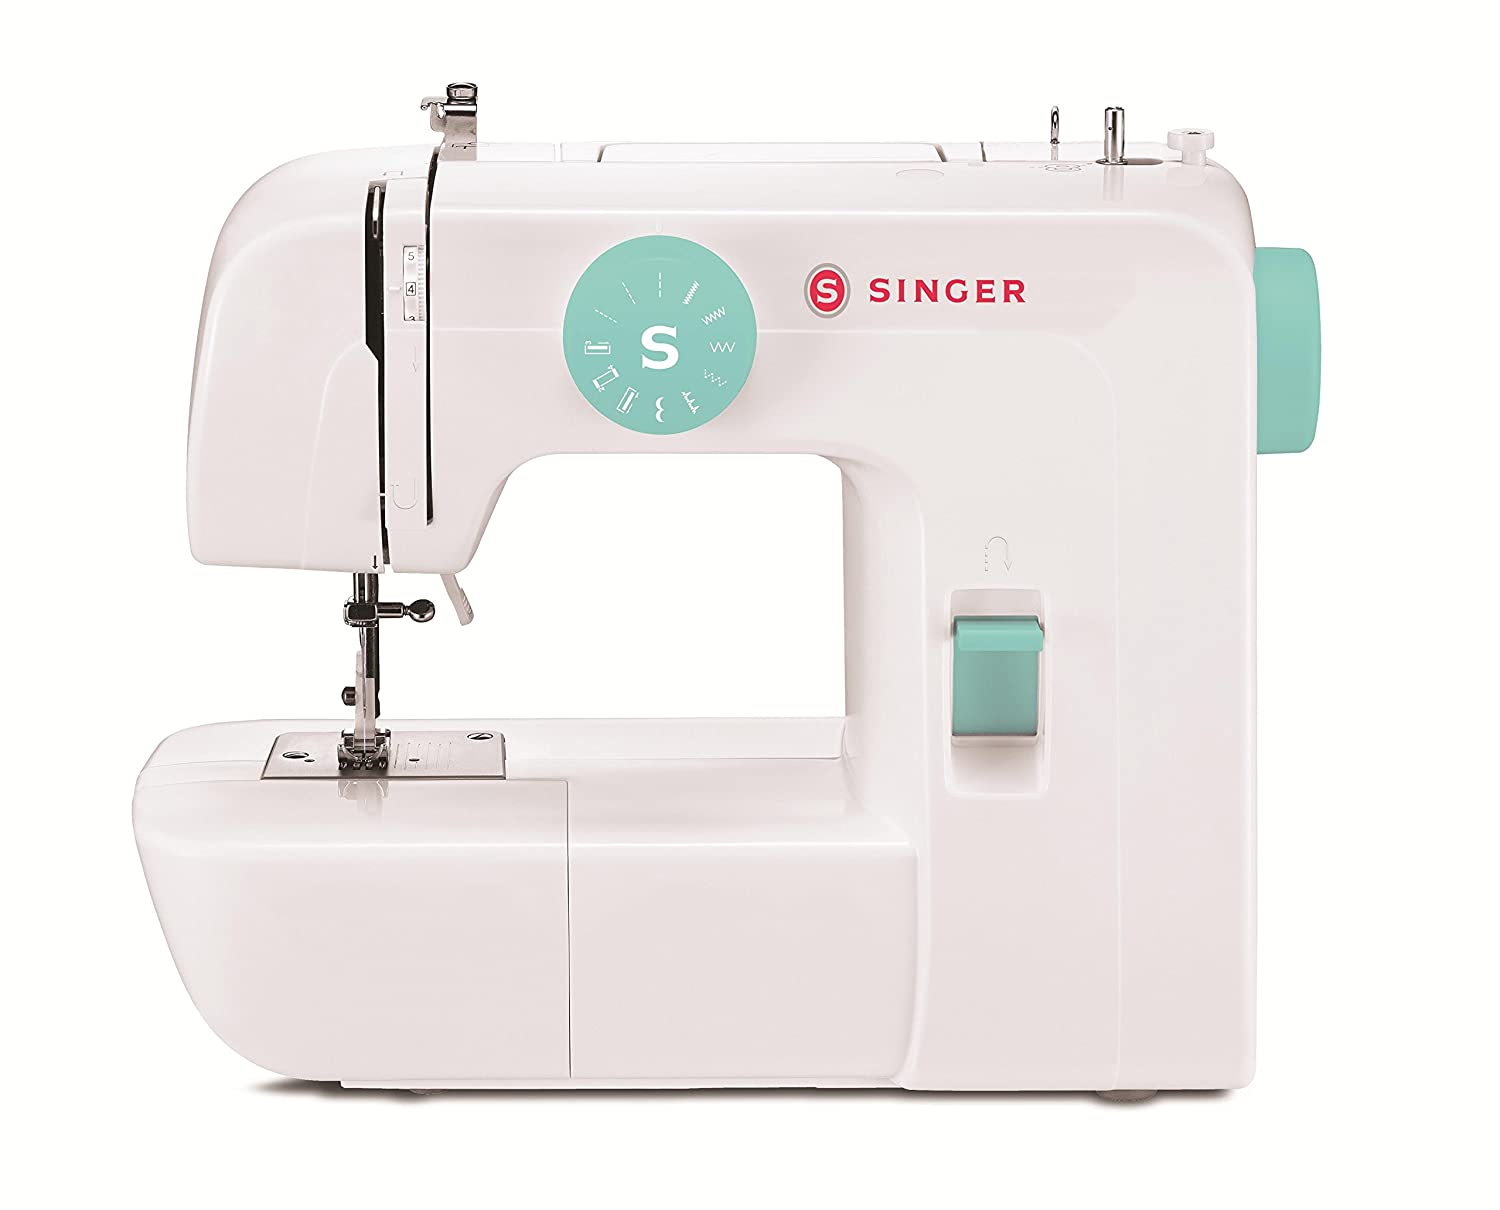 Amazoncom SINGER Portable Sewing Machine With Free Online - Singer kitchen equipment